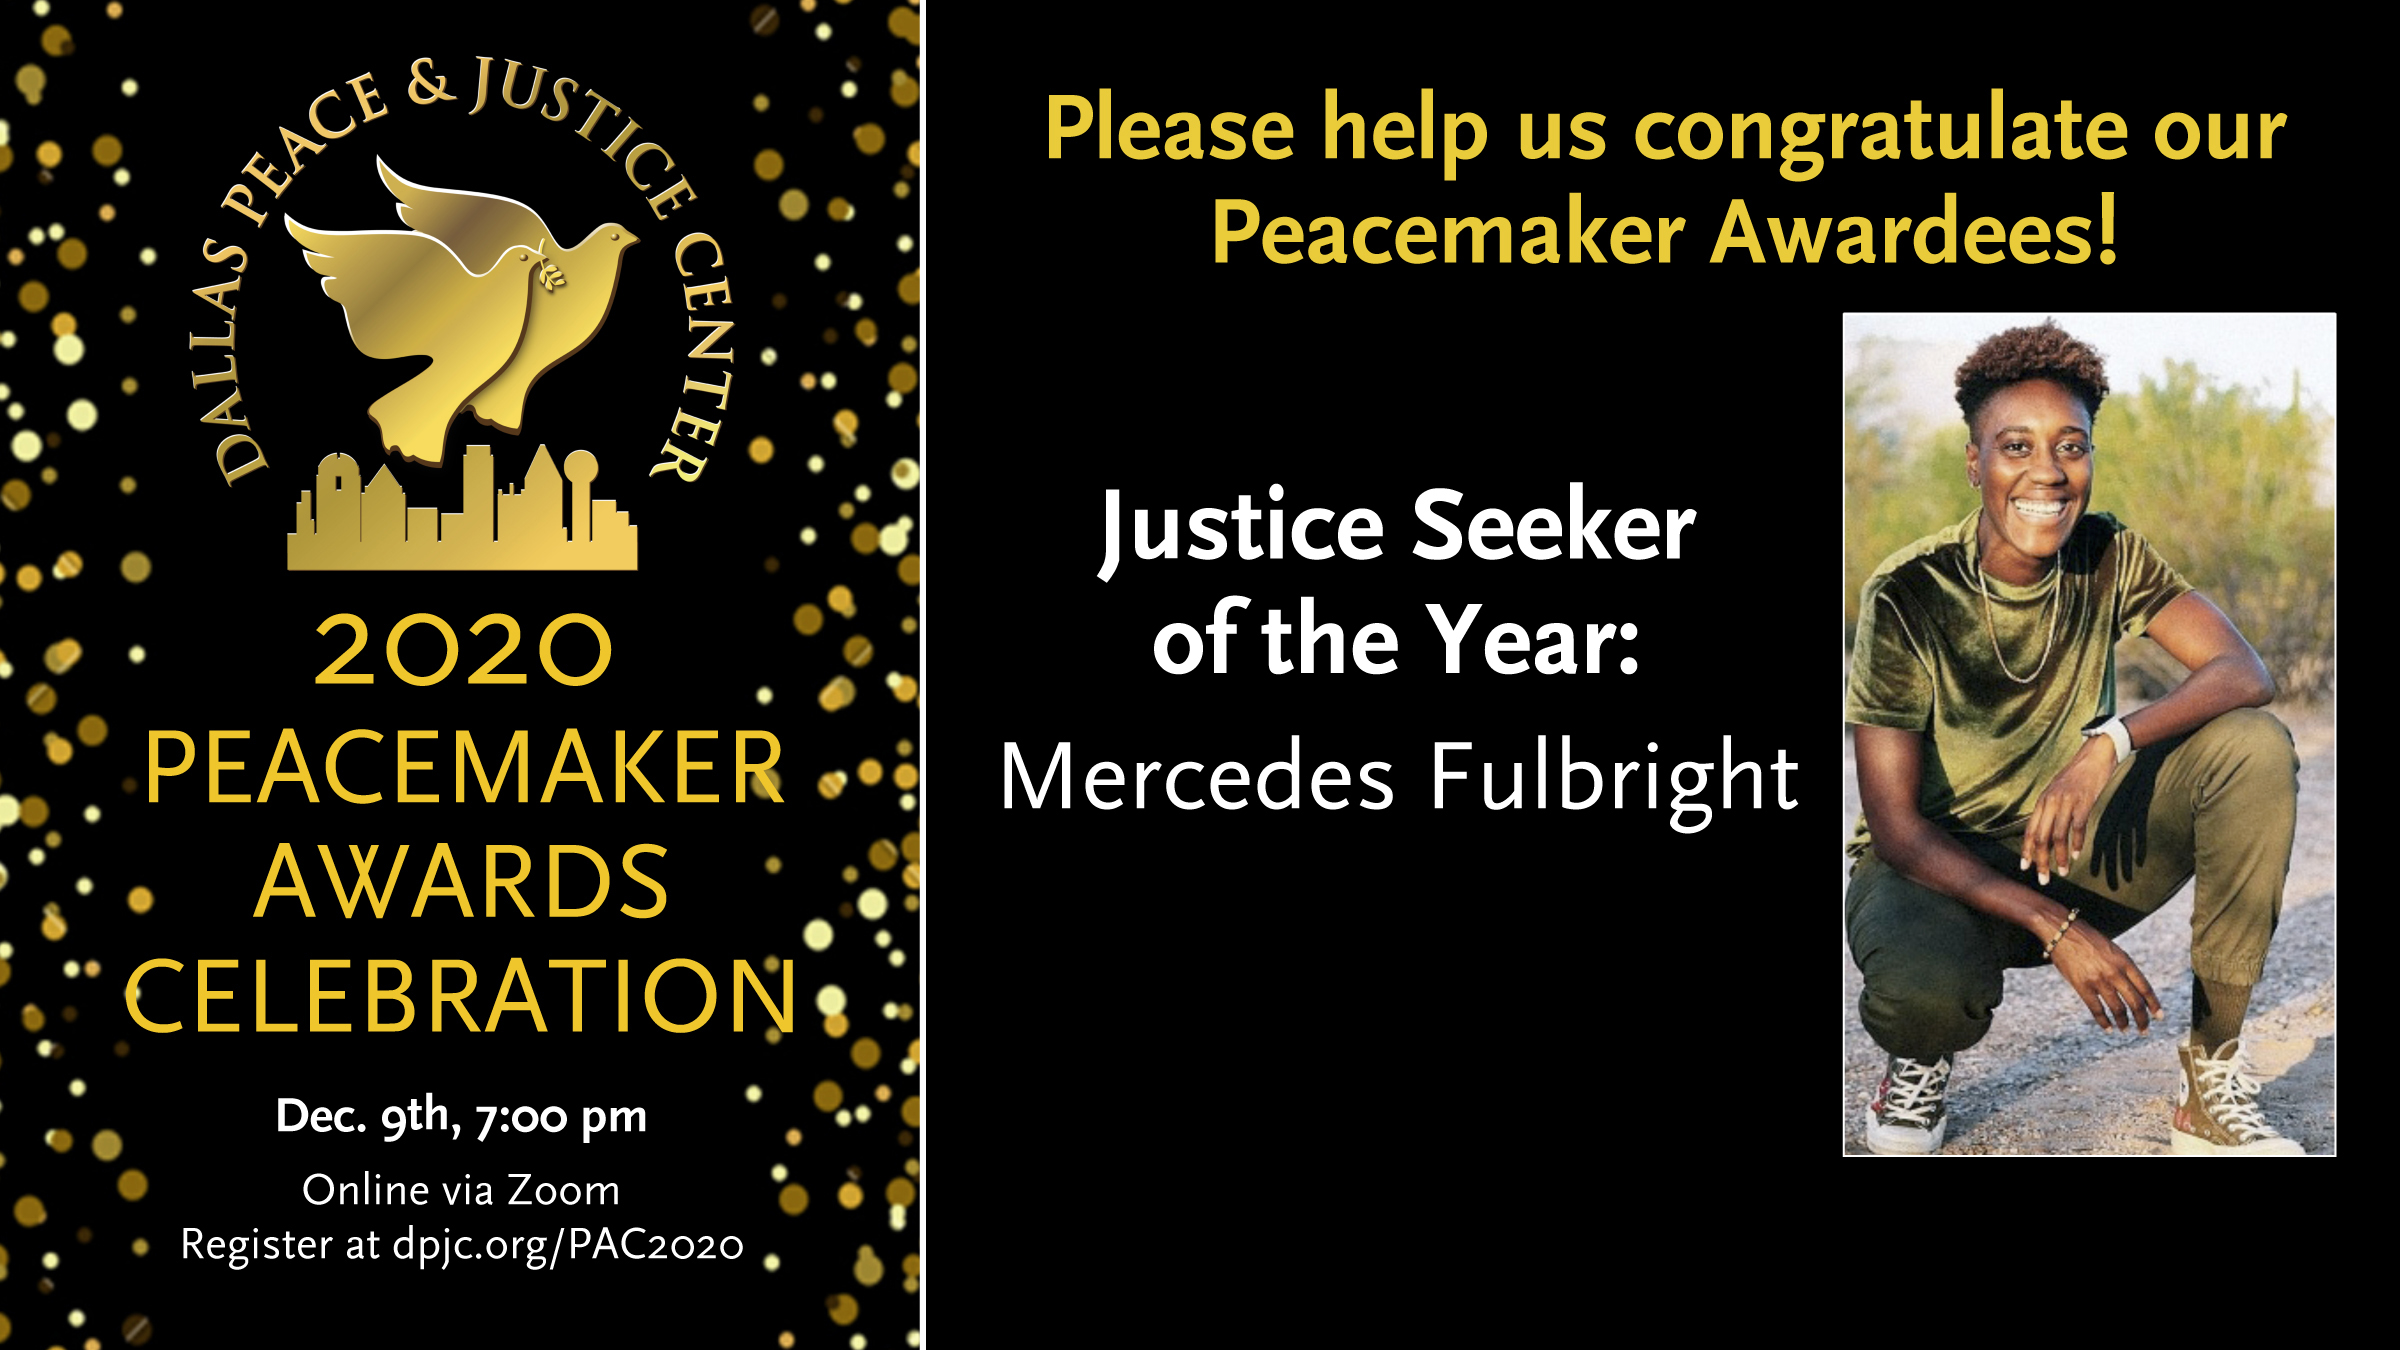 Peacemaker Awards Celebration